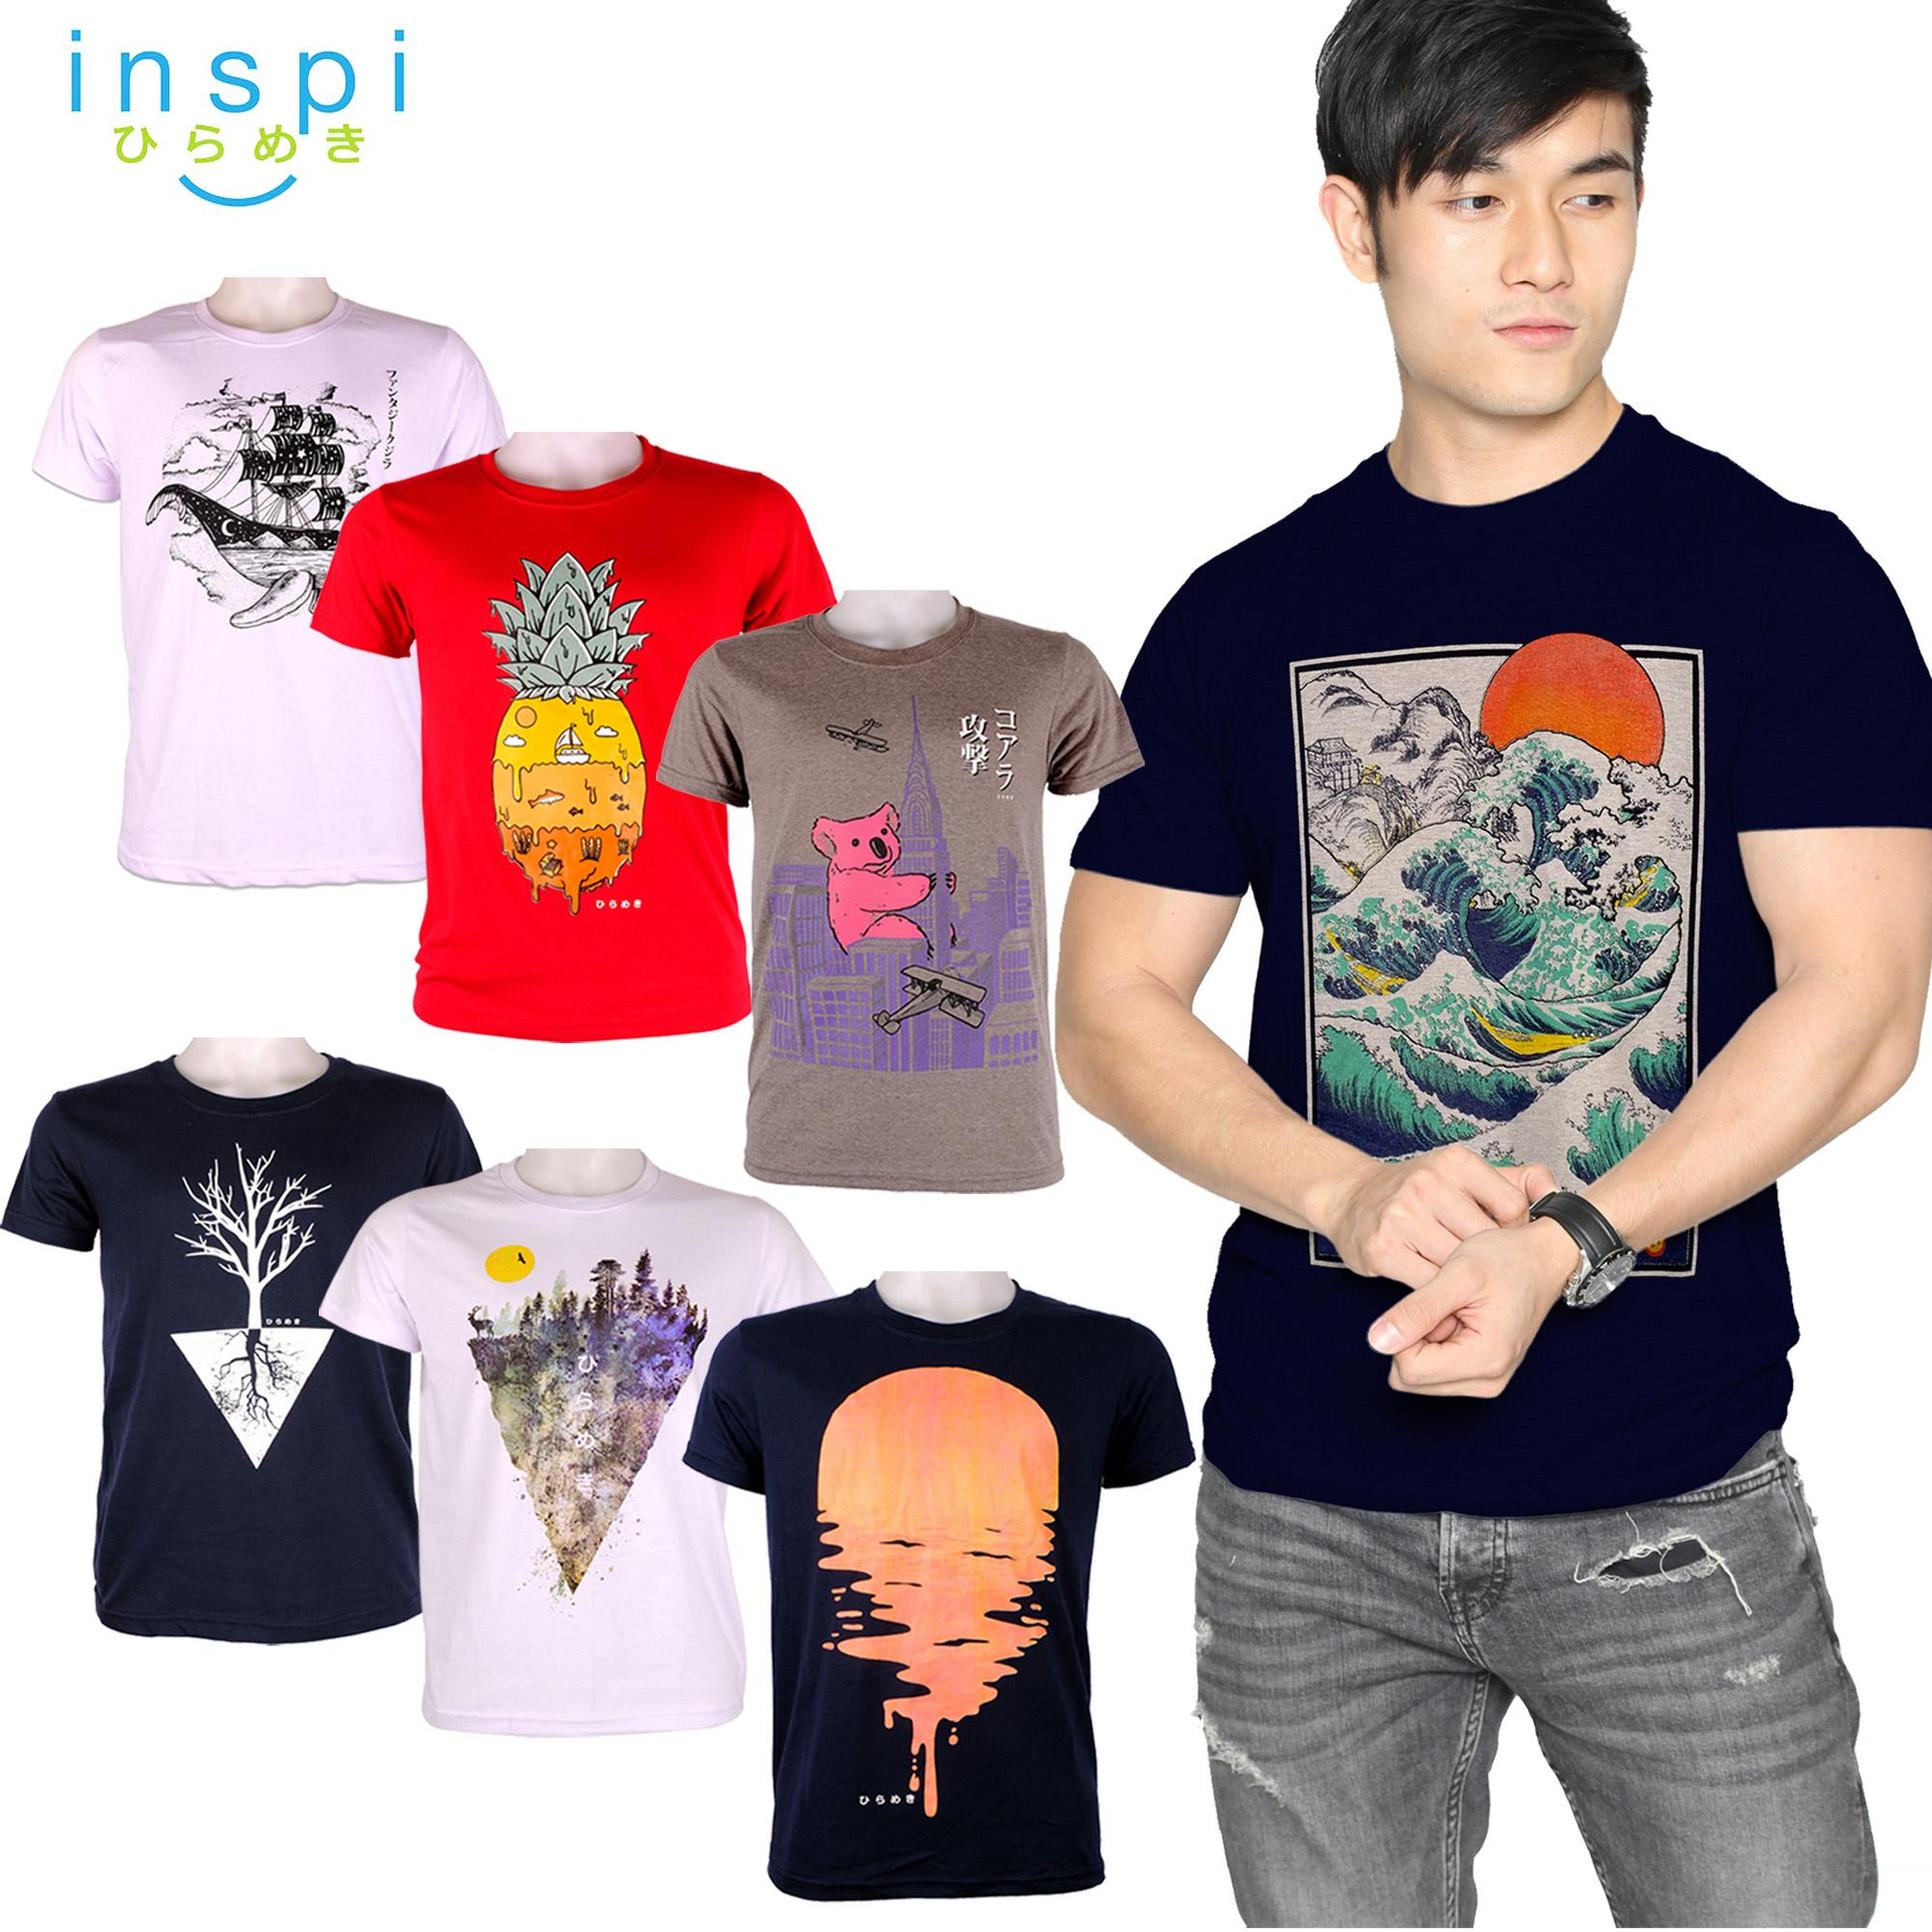 29f081d6 T-Shirt Clothing for Men for sale - Mens Shirt Clothing Online Deals &  Prices in Philippines | Lazada.com.ph